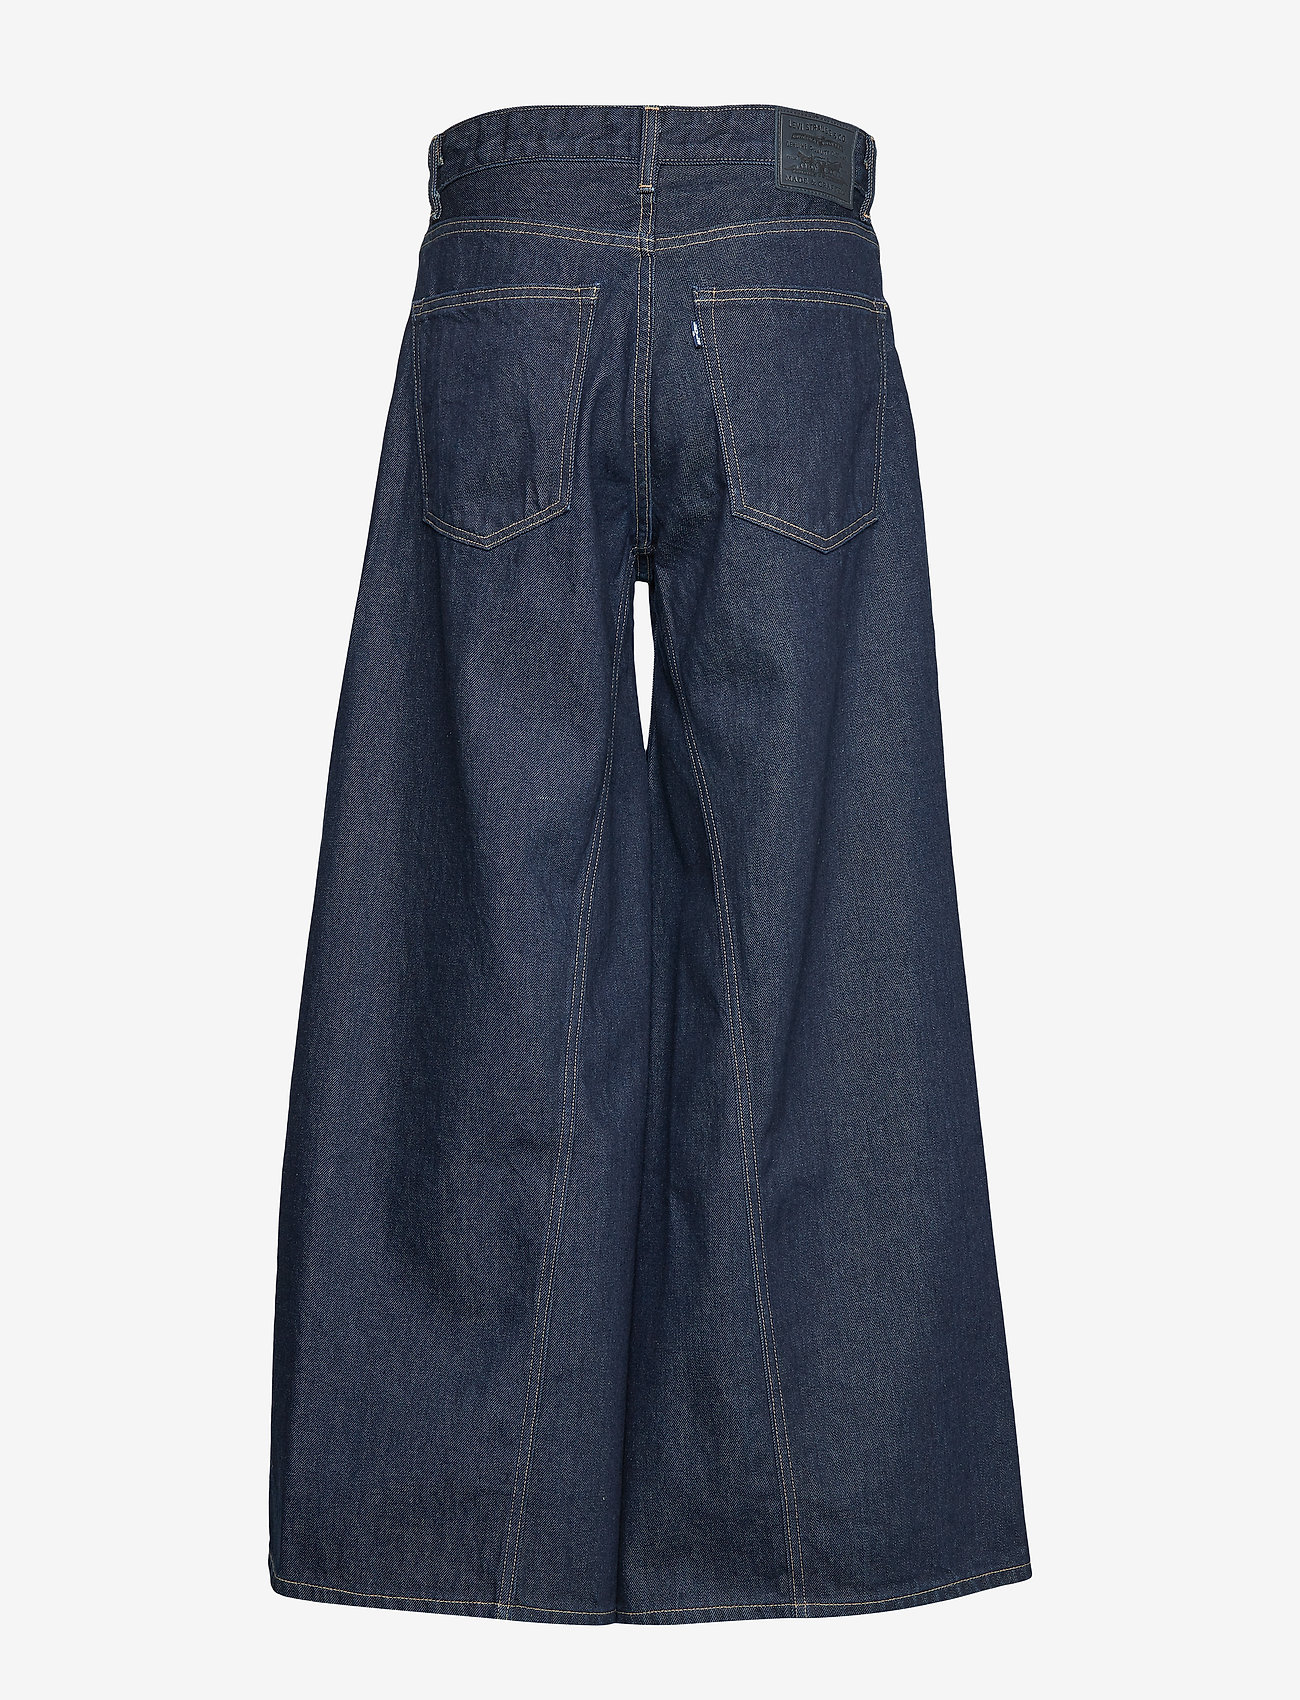 Levi's Made & Crafted - LMC RANCHER WIDE LEG LMC FRESH - szerokie dżinsy - dark indigo - flat finish - 1